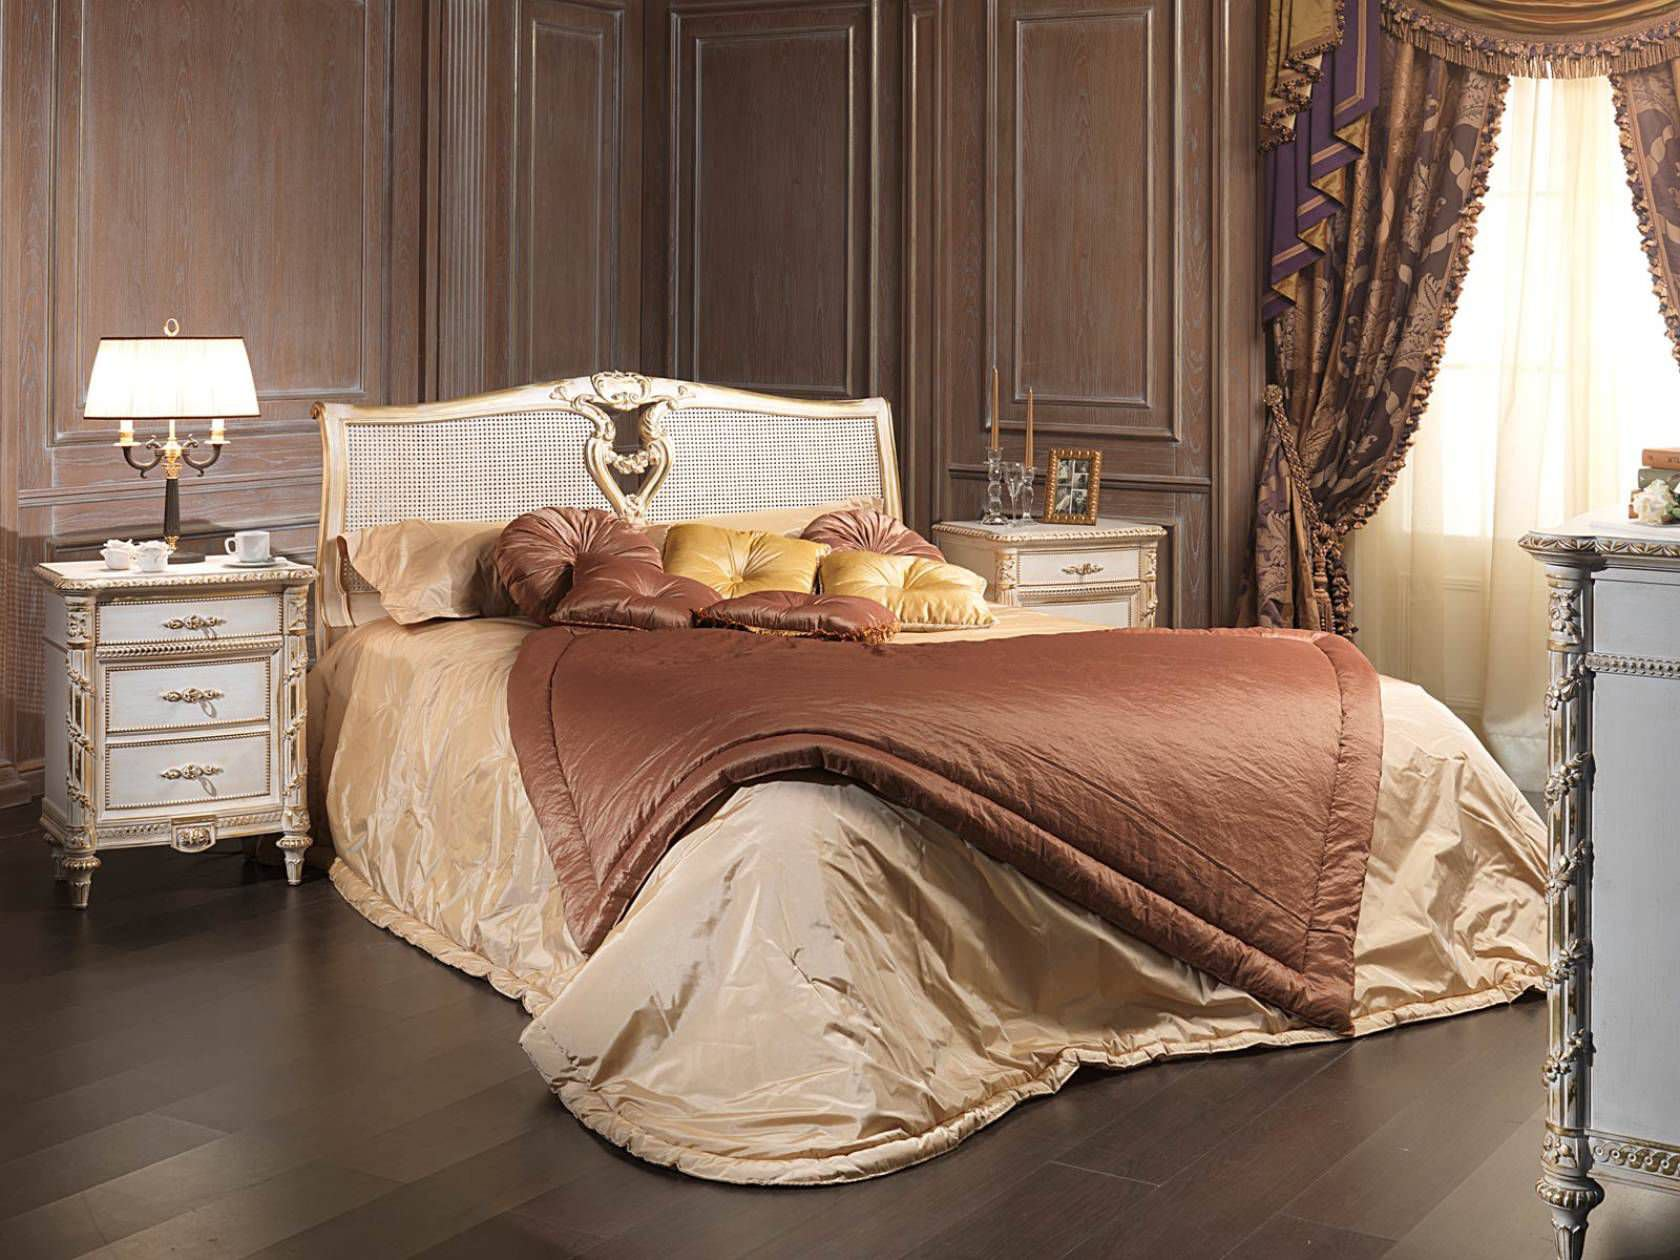 Louis xvi bedroom furniture -  Double Bed Louis Xvi Style Wooden White And Gold Vimercati Meda Luxury Classic Furniture